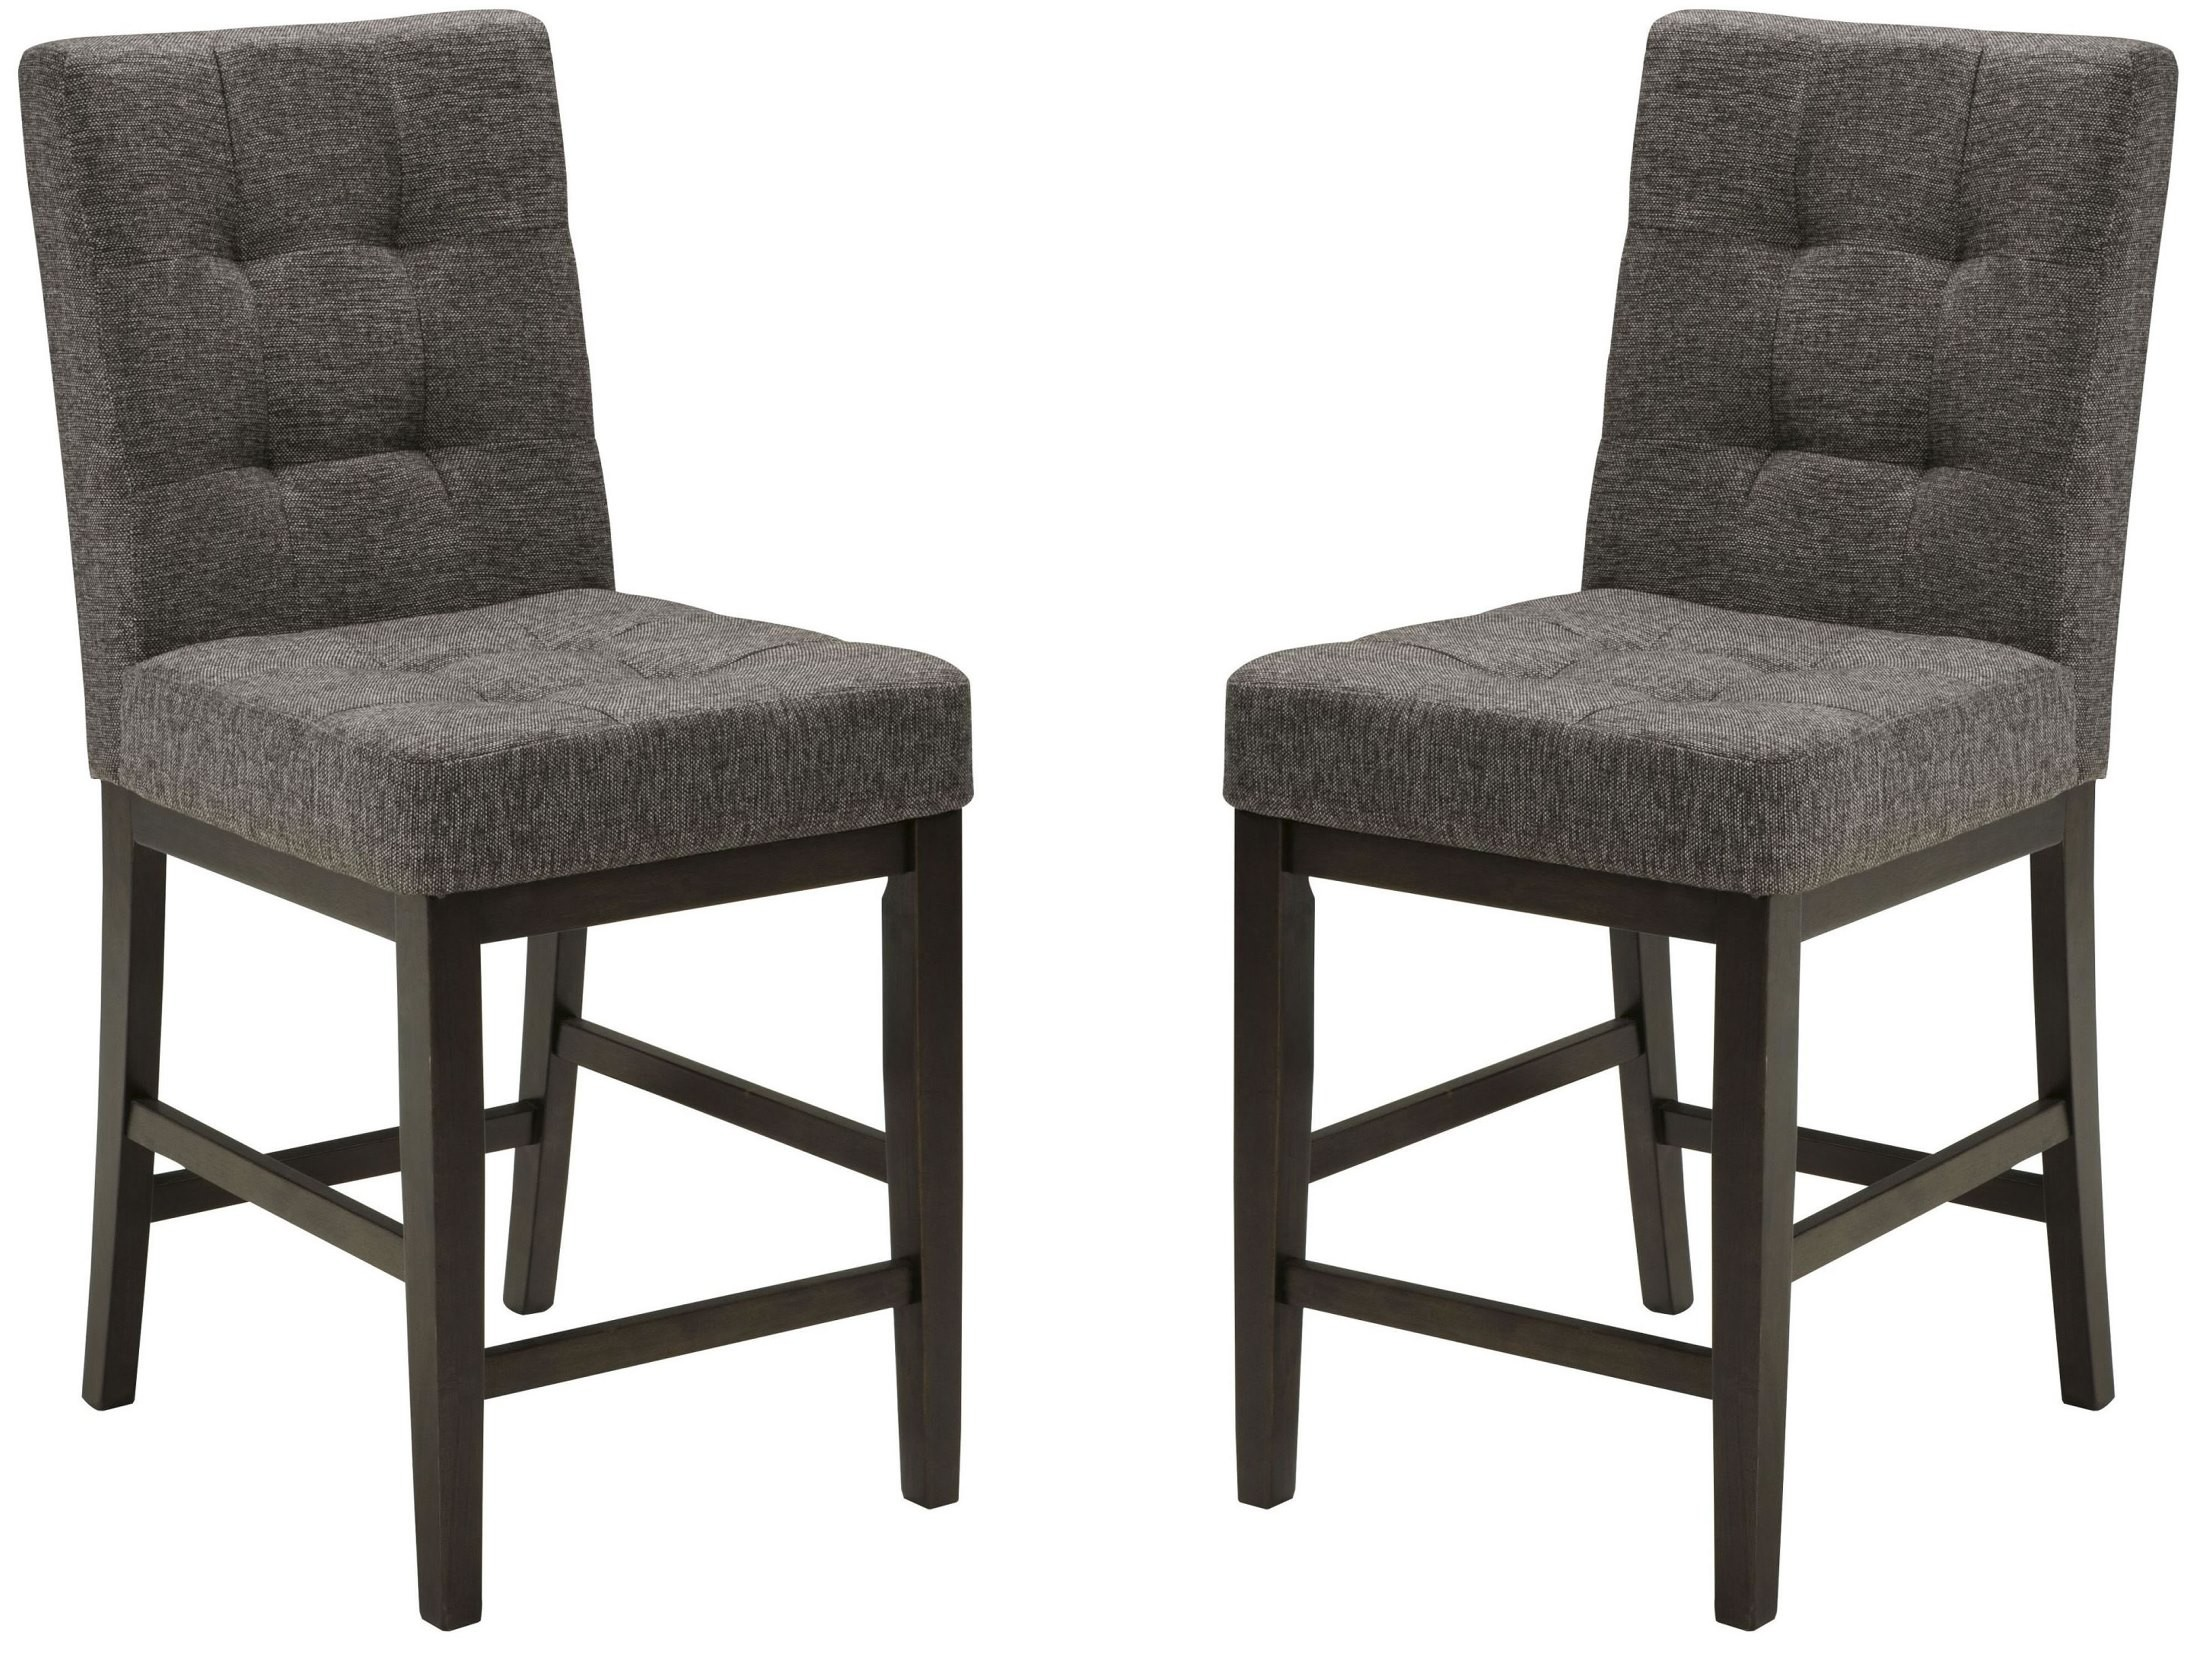 Chanella dark gray upholstered barstool set of 2 from for Furniture 124